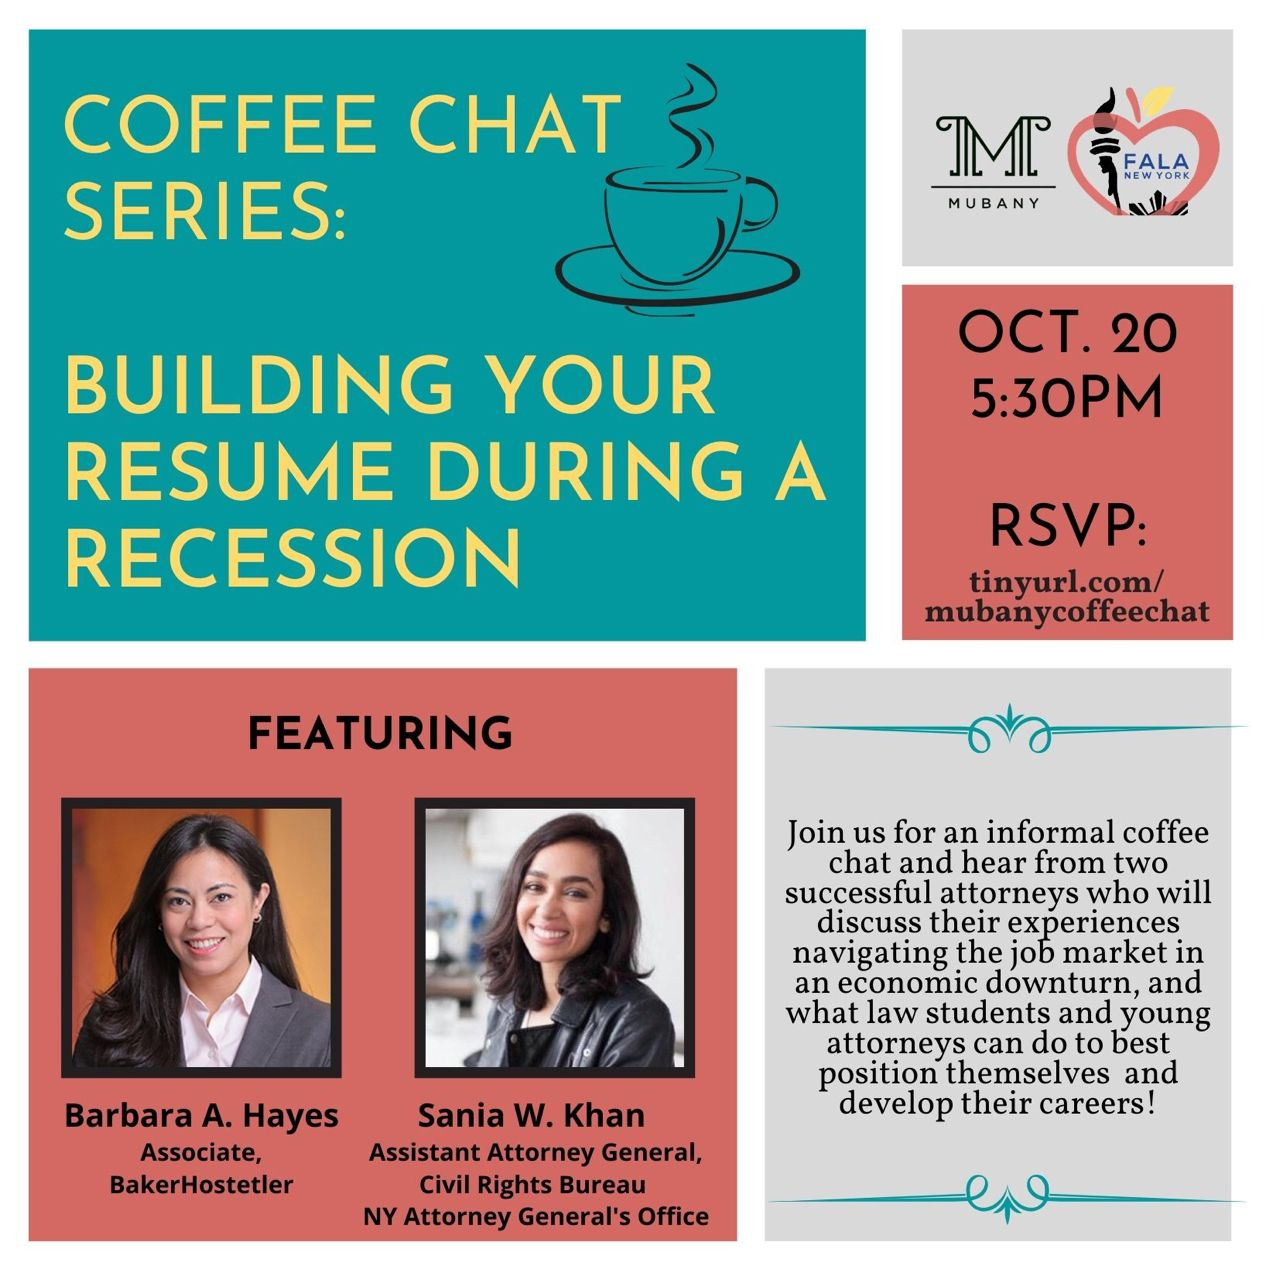 ☕️ Coffee Chat Series!☕️ ✨Building Your Resume During A Recession✨